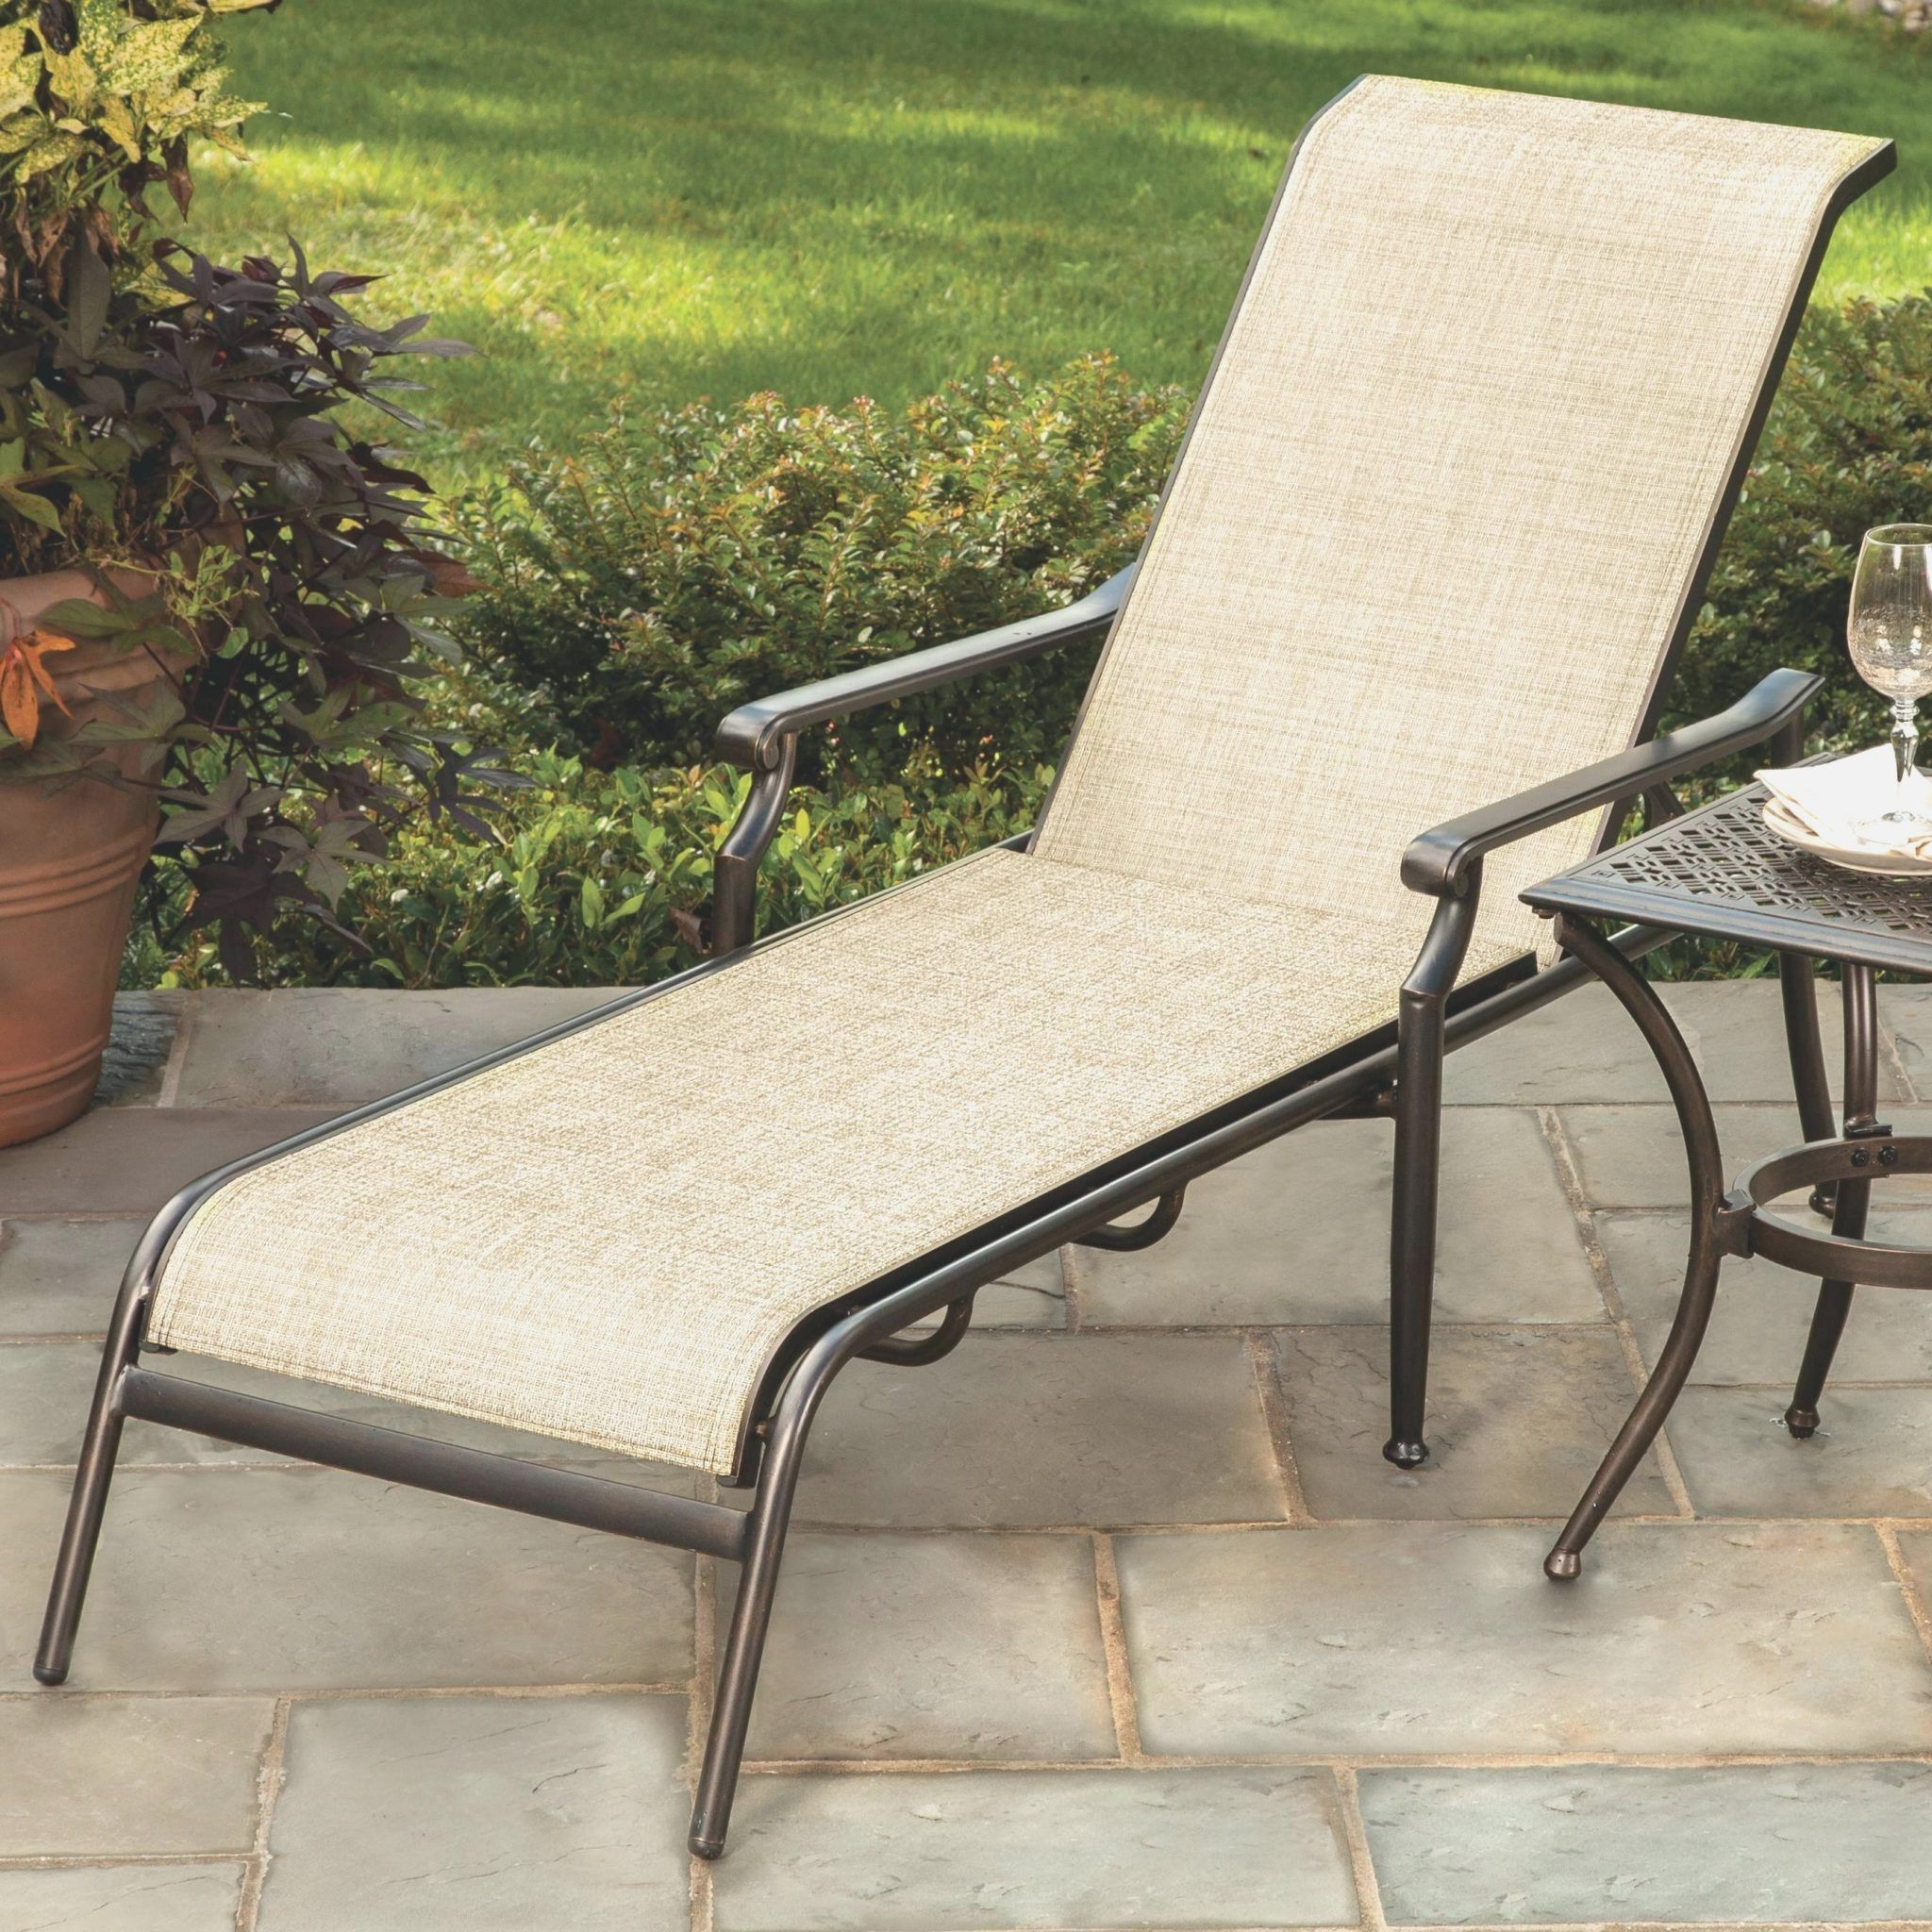 Costco Lounge Chairs Pool Lounge Chairs Costco Costco Poolside Lounge Chairs Lounge